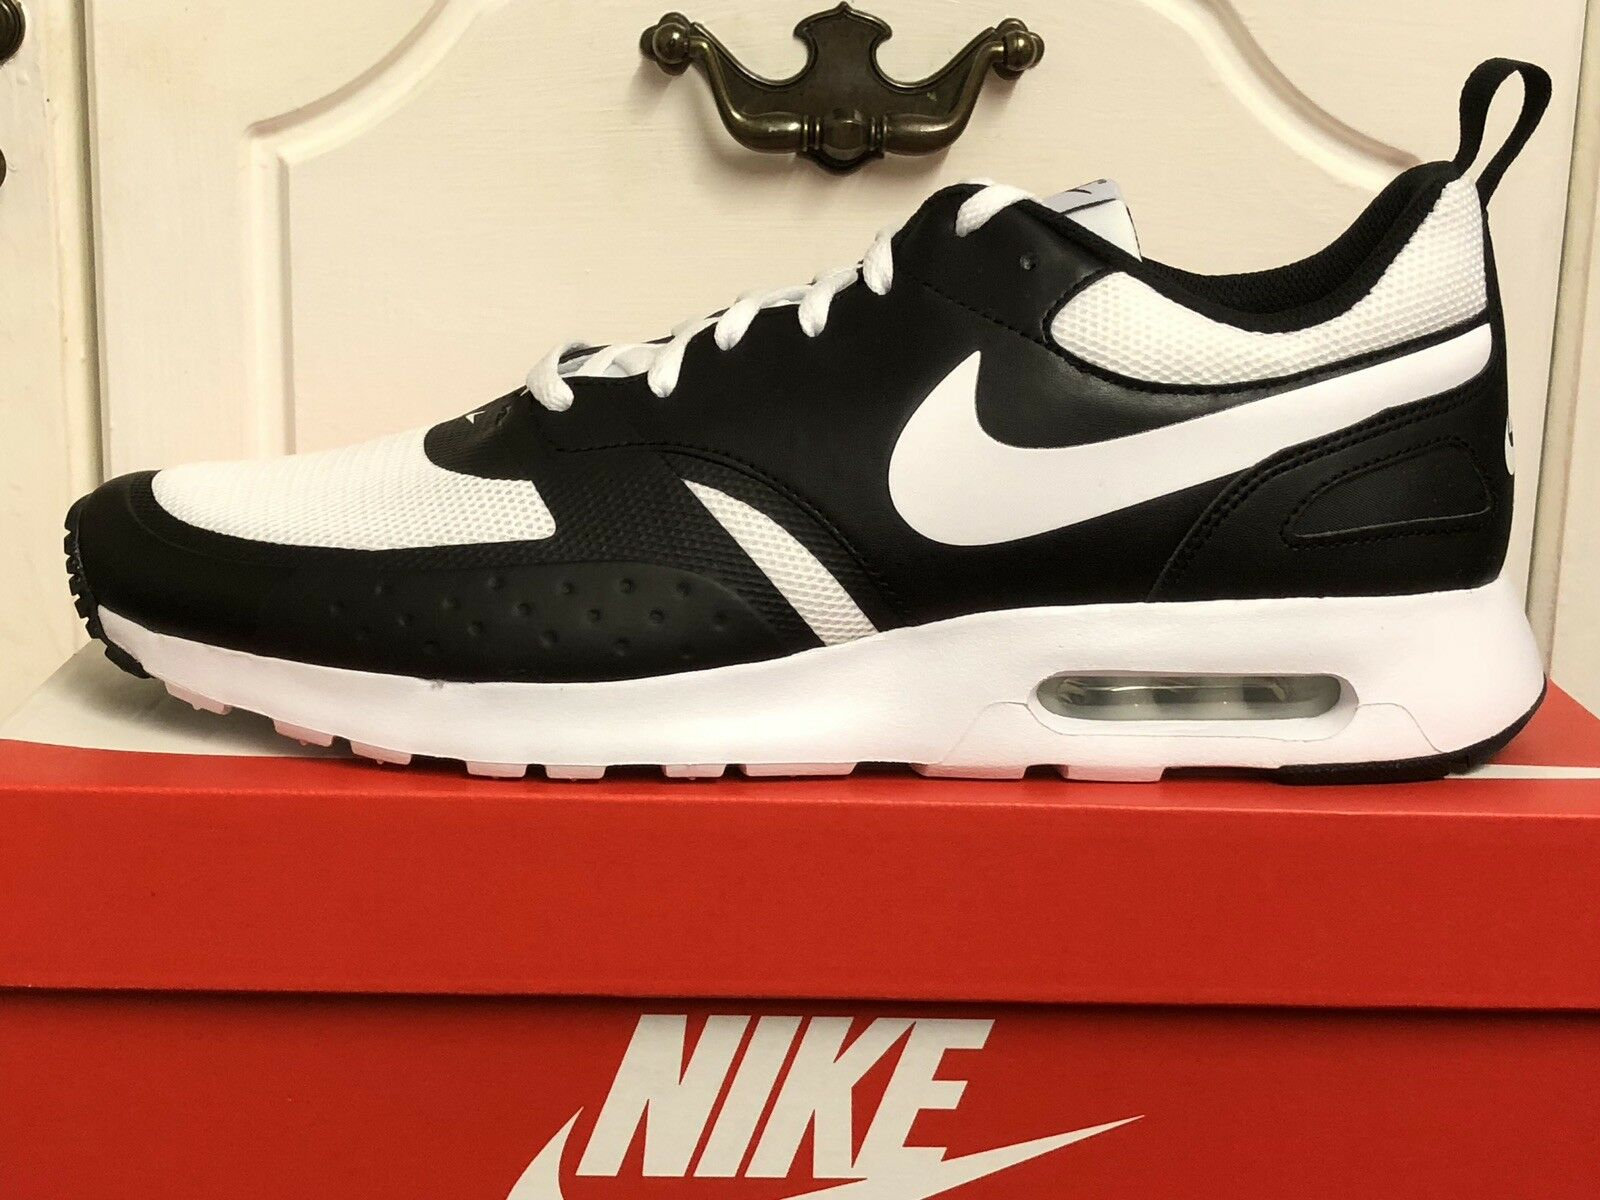 NIKE AIR MAX VISION MENS TRAINERS SNEAKERS SHOES US 14